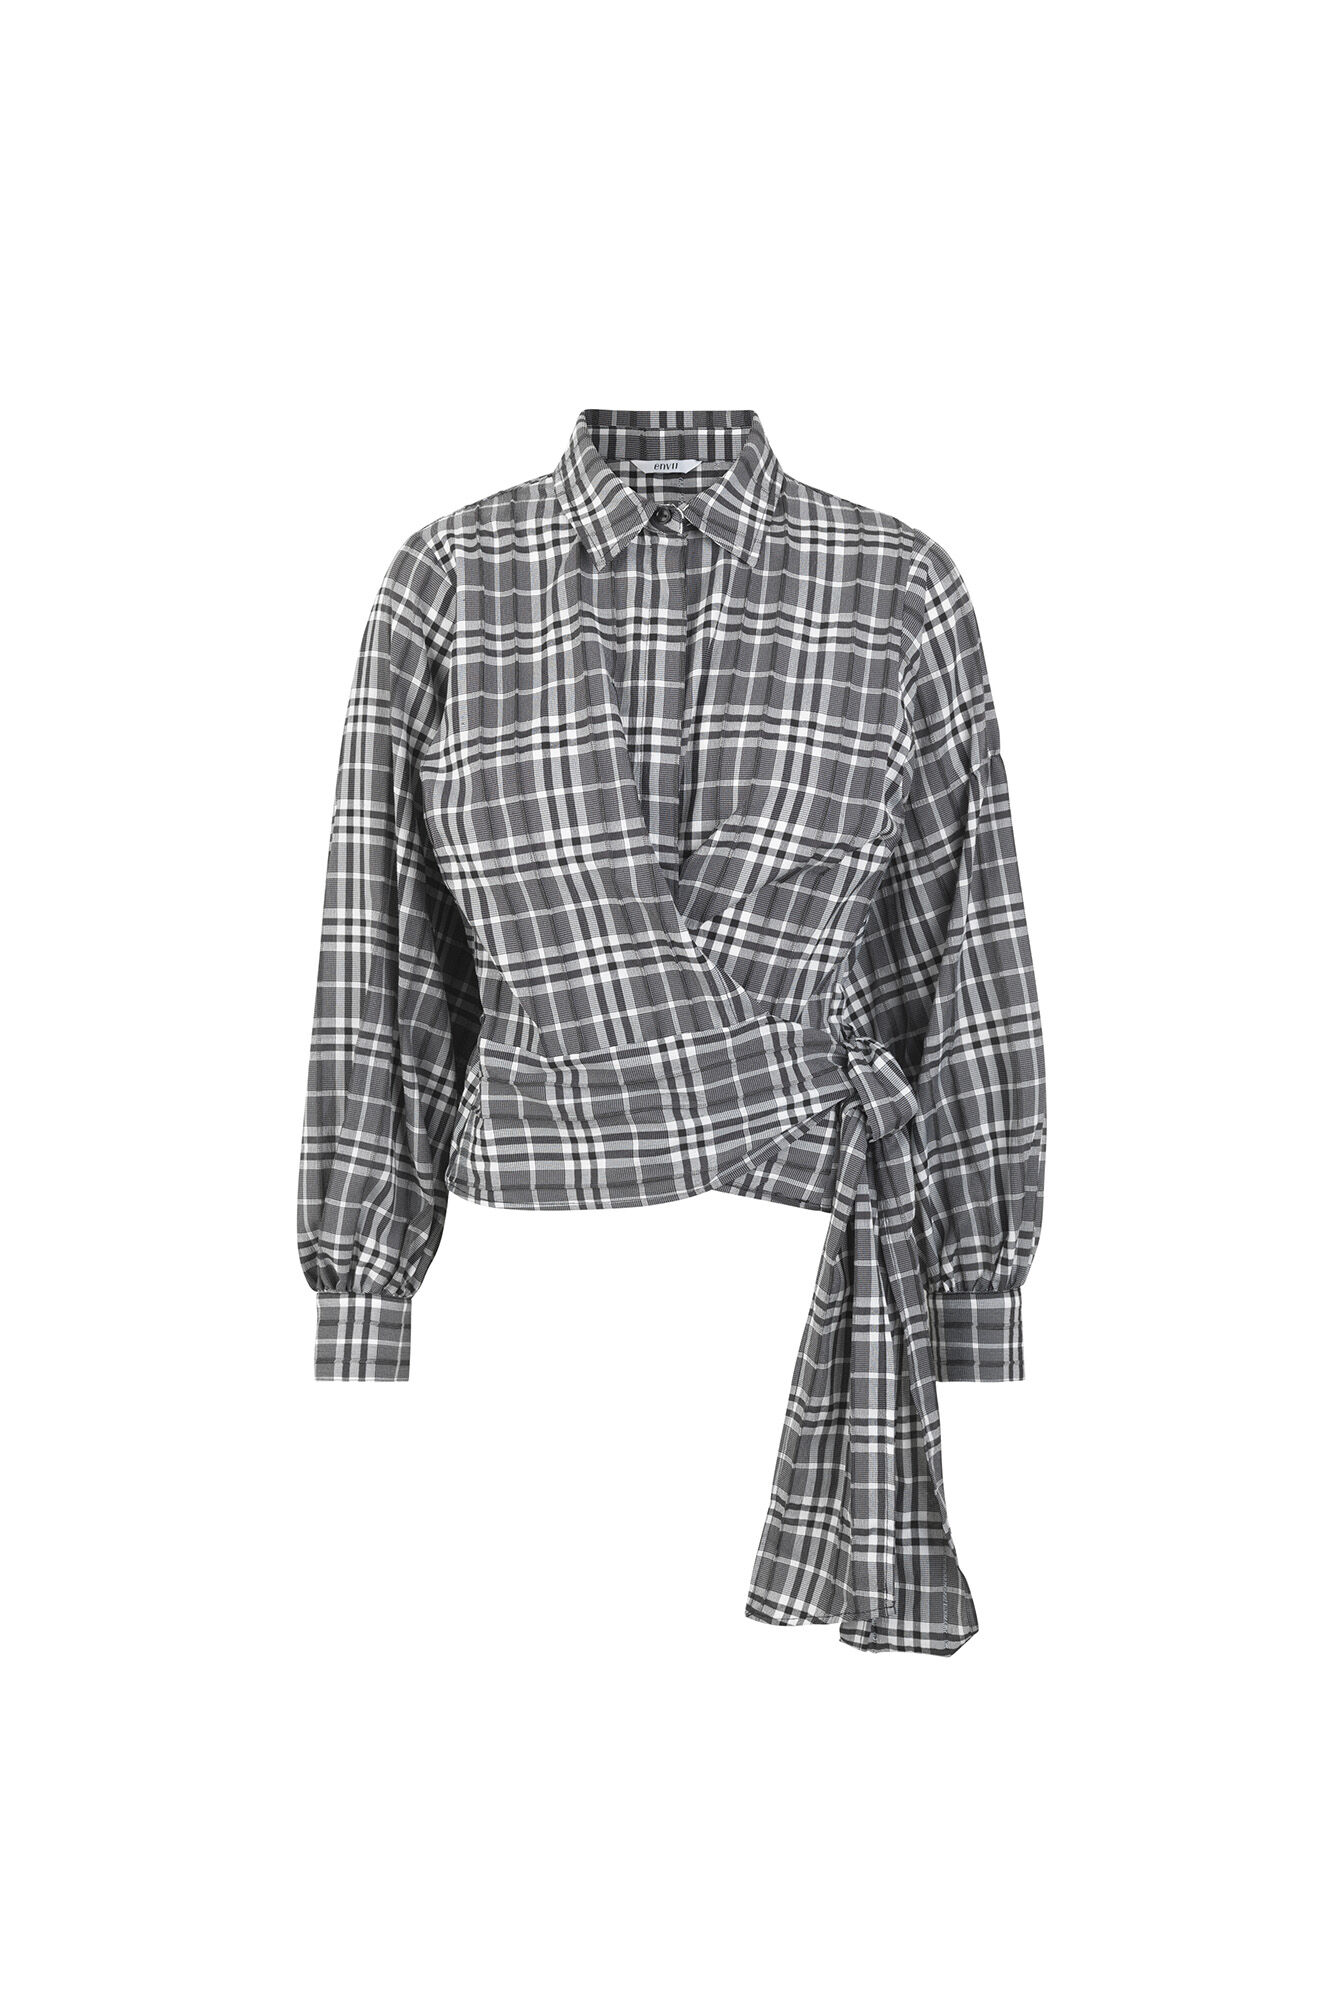 ENCRYSTAL LS SHIRT 6672, B/W CHECK